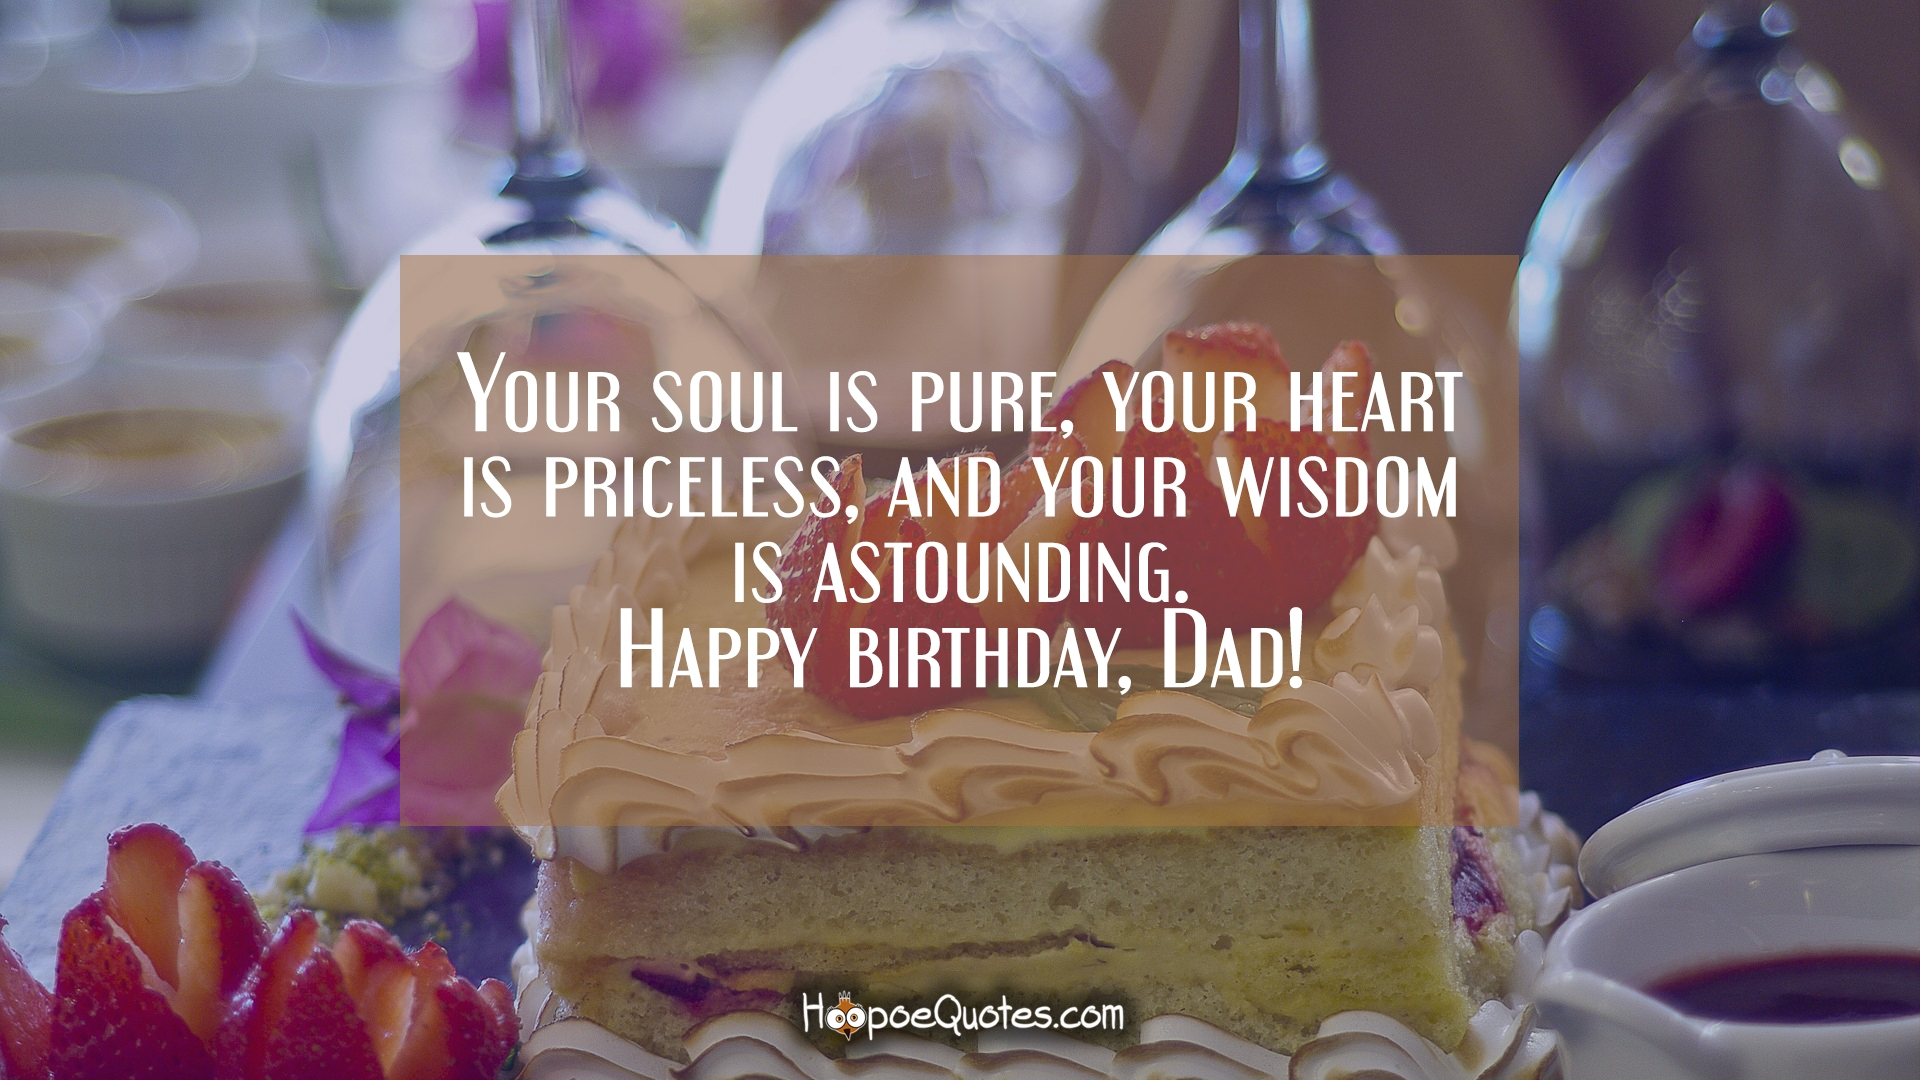 50 Images Birthday Wishes For Someone Special In Your Life